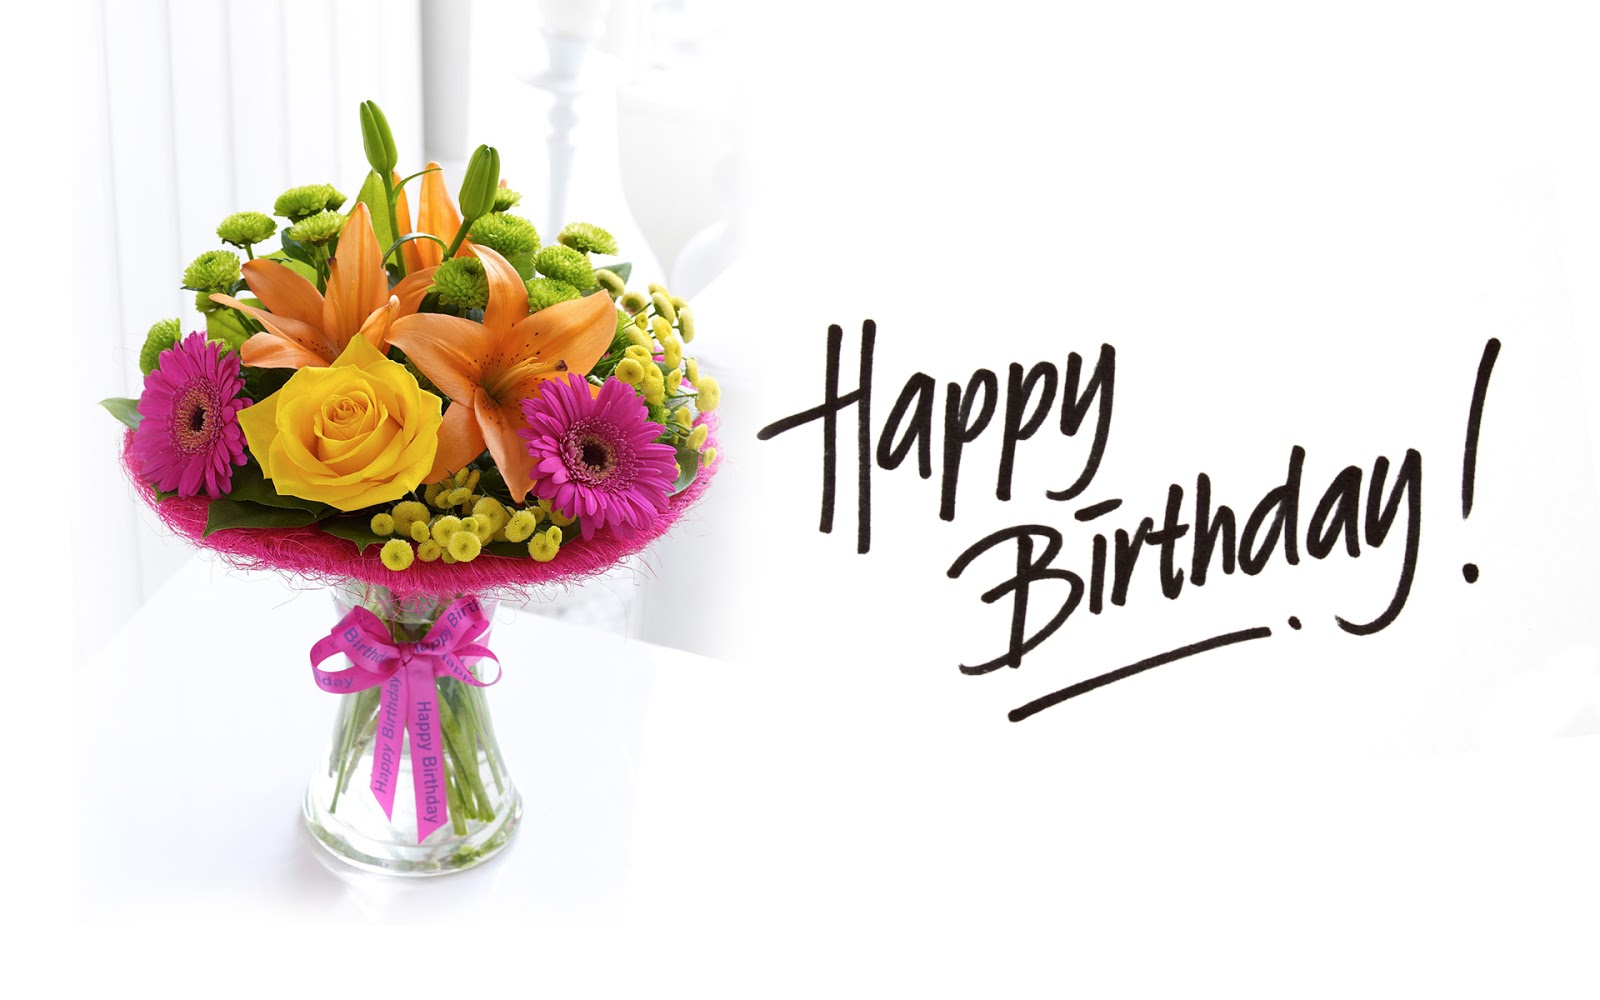 Wish you a very happy birthday words texted wishes card images beautiful happy birthday bouquet of flowers hd wallpaper izmirmasajfo Choice Image